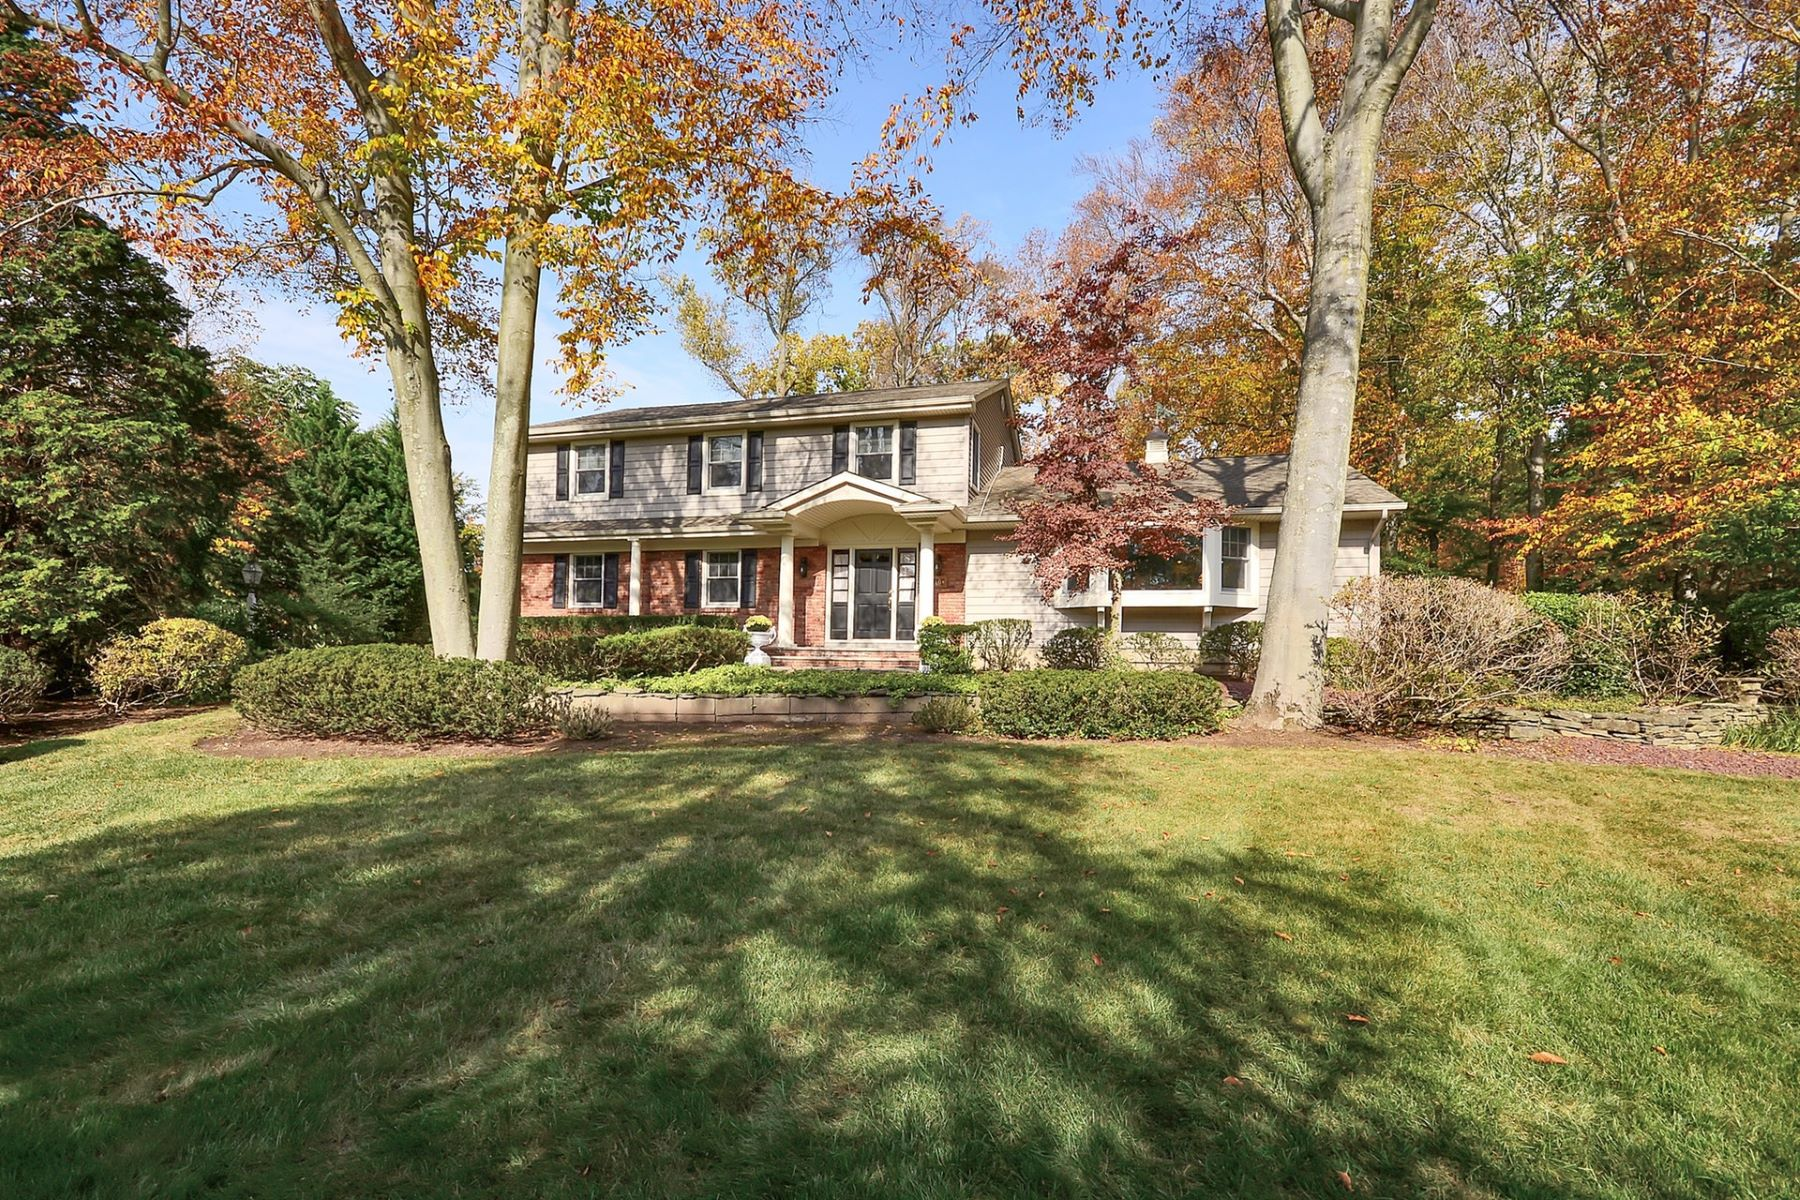 Single Family Home for Sale at Elegantly Renovated Woodcliff Lake Home 16 Gary Ct, Woodcliff Lake, New Jersey, 07677 United States